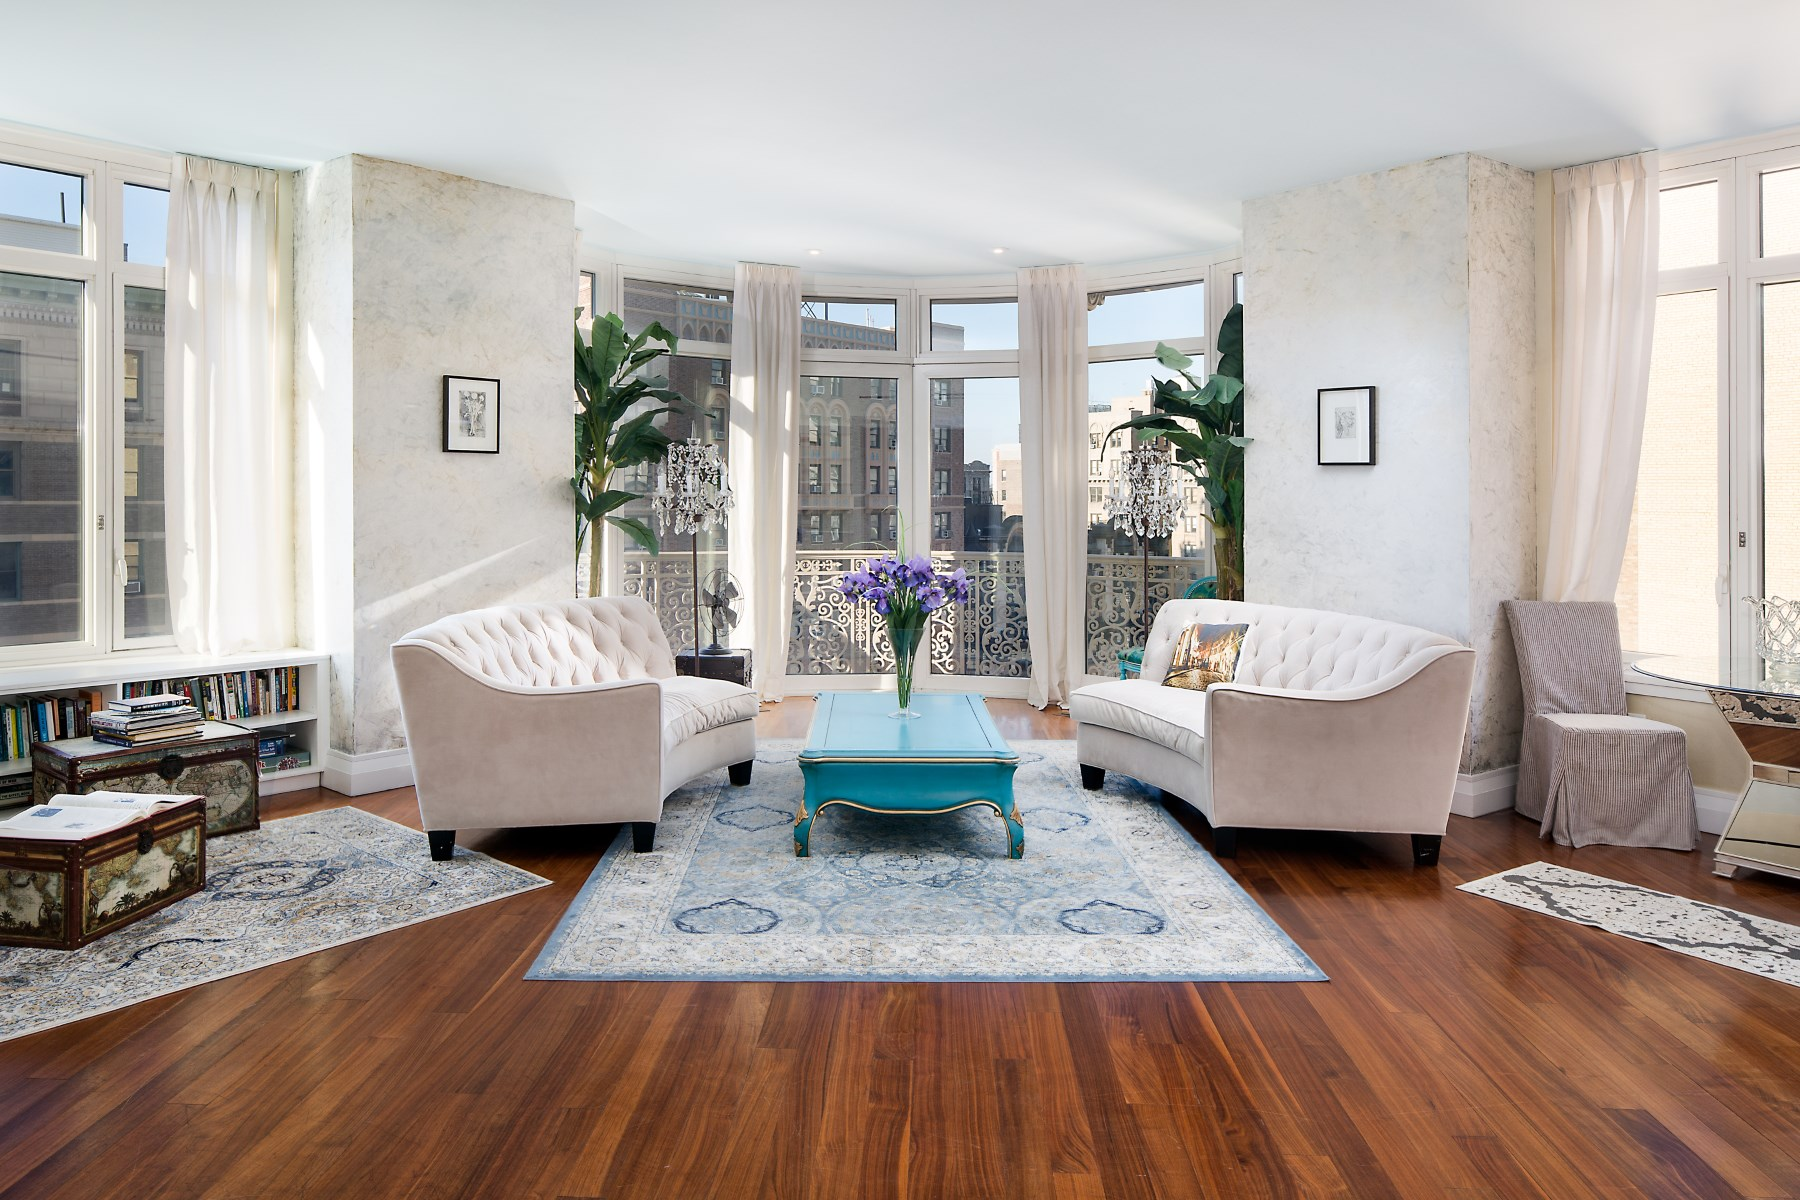 Condominium for Sale at The Laureate, Apt 12A 2150 Broadway Apt 12a Upper West Side, New York, New York 10023 United States